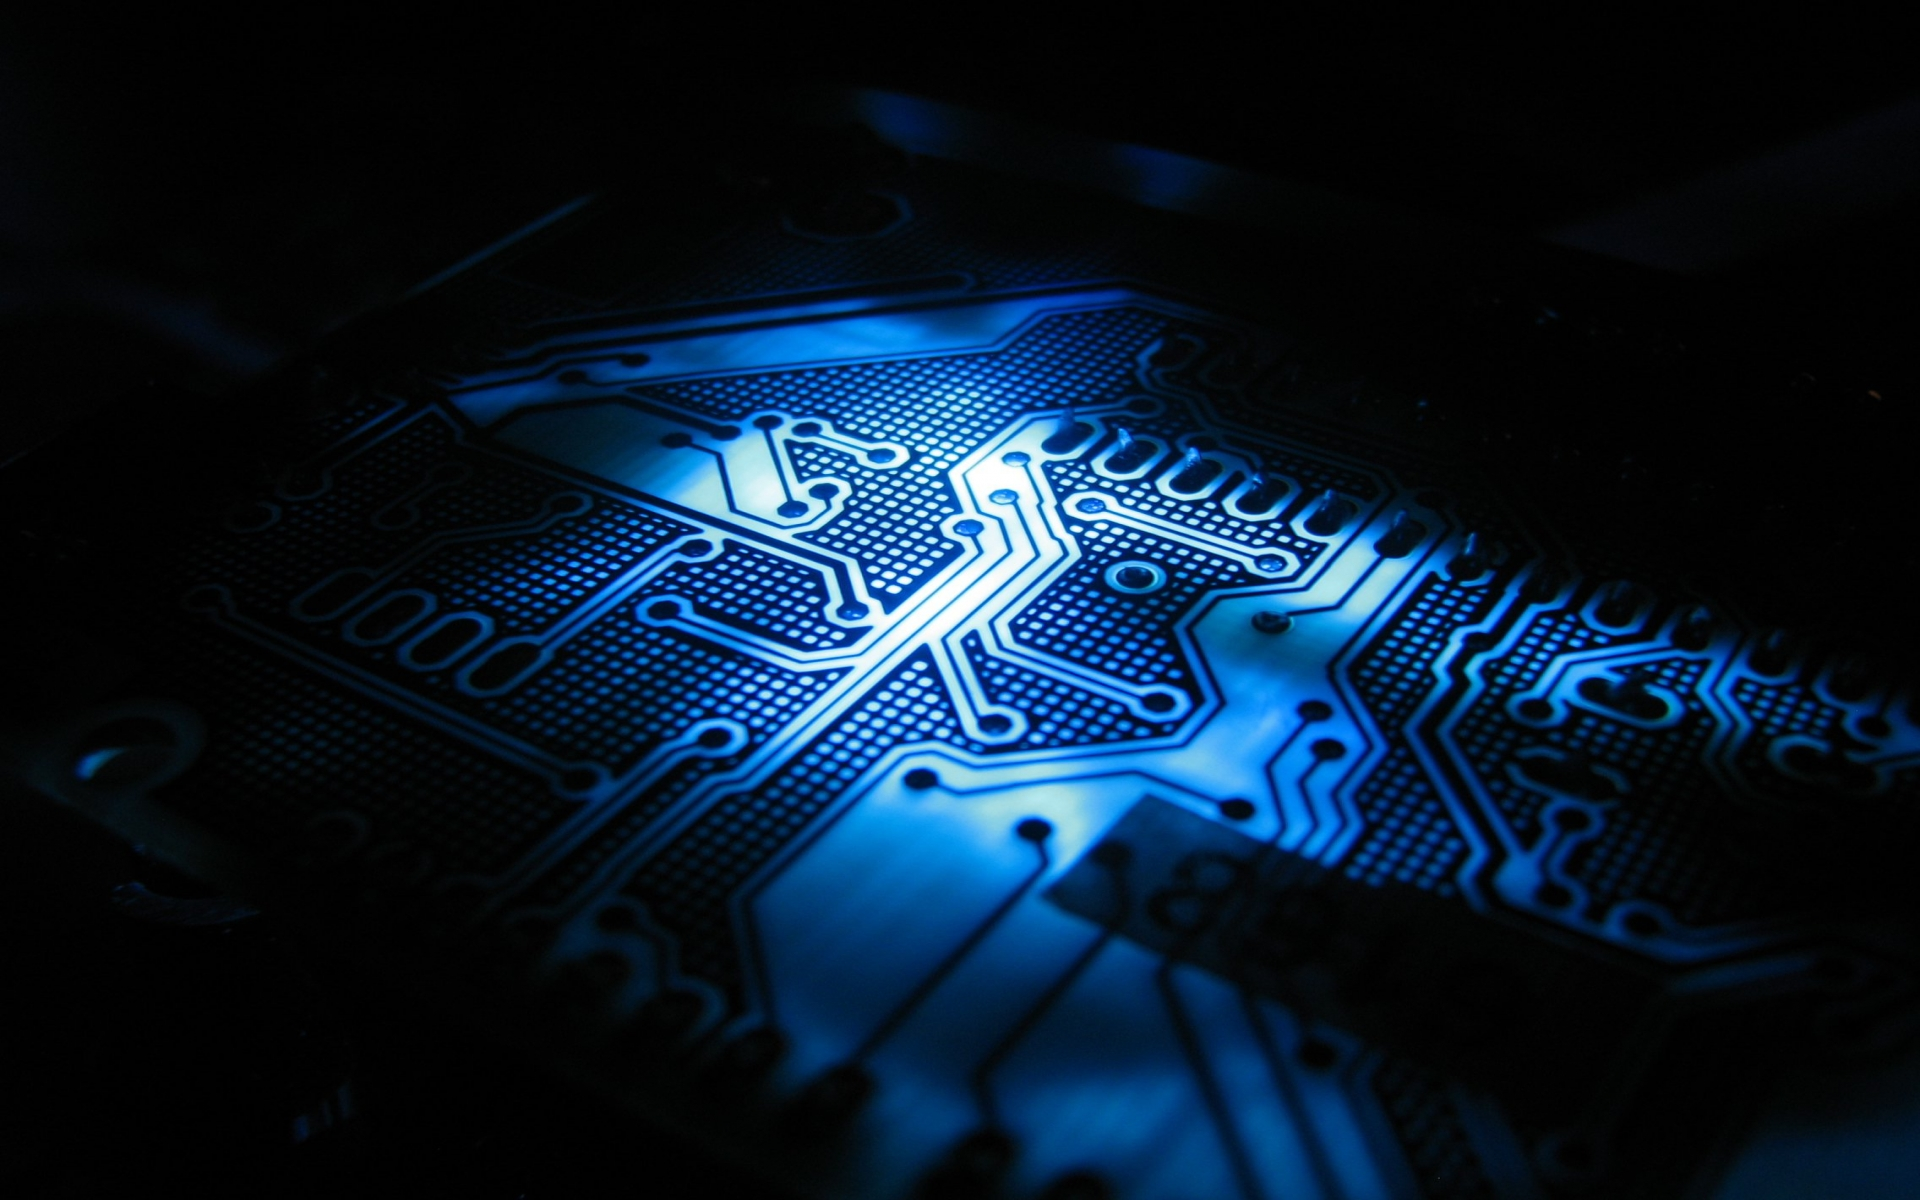 blue circuit board widejpg